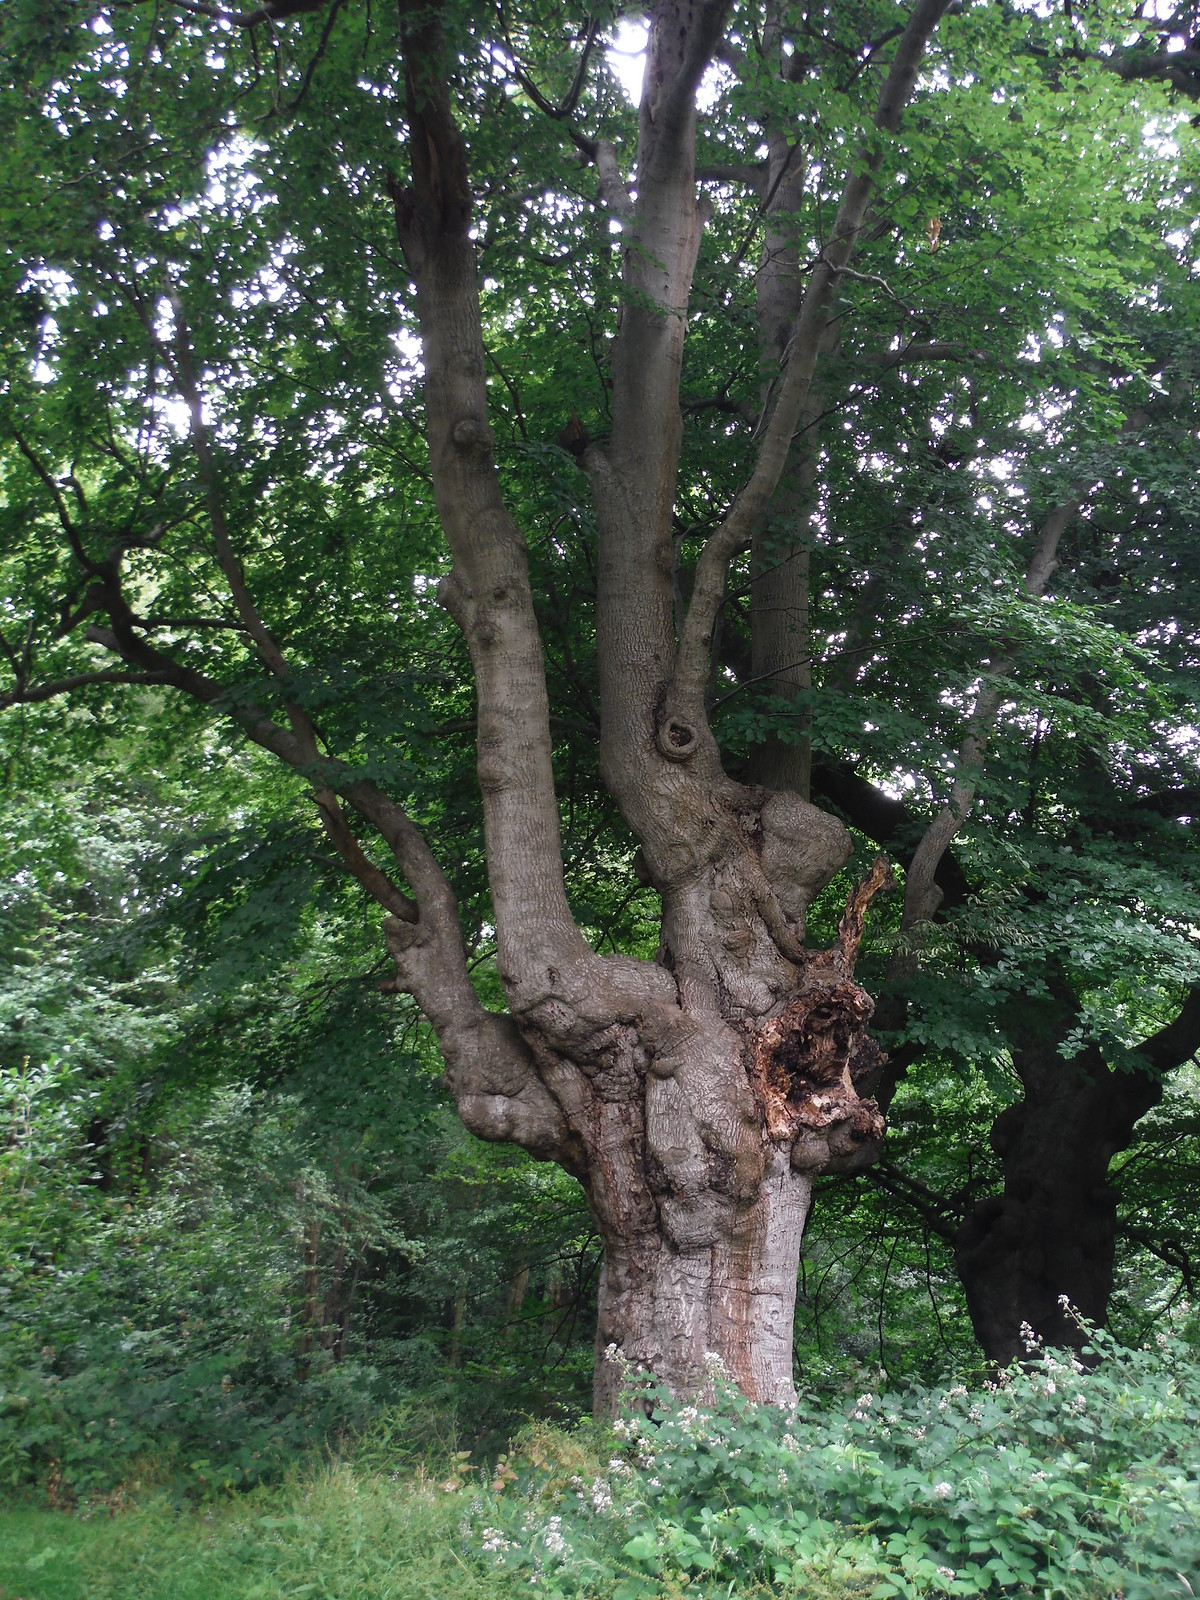 Ancient Pollarded Tree in Burnham Beeches SWC Walk 189 Beeches Way: West Drayton to Cookham